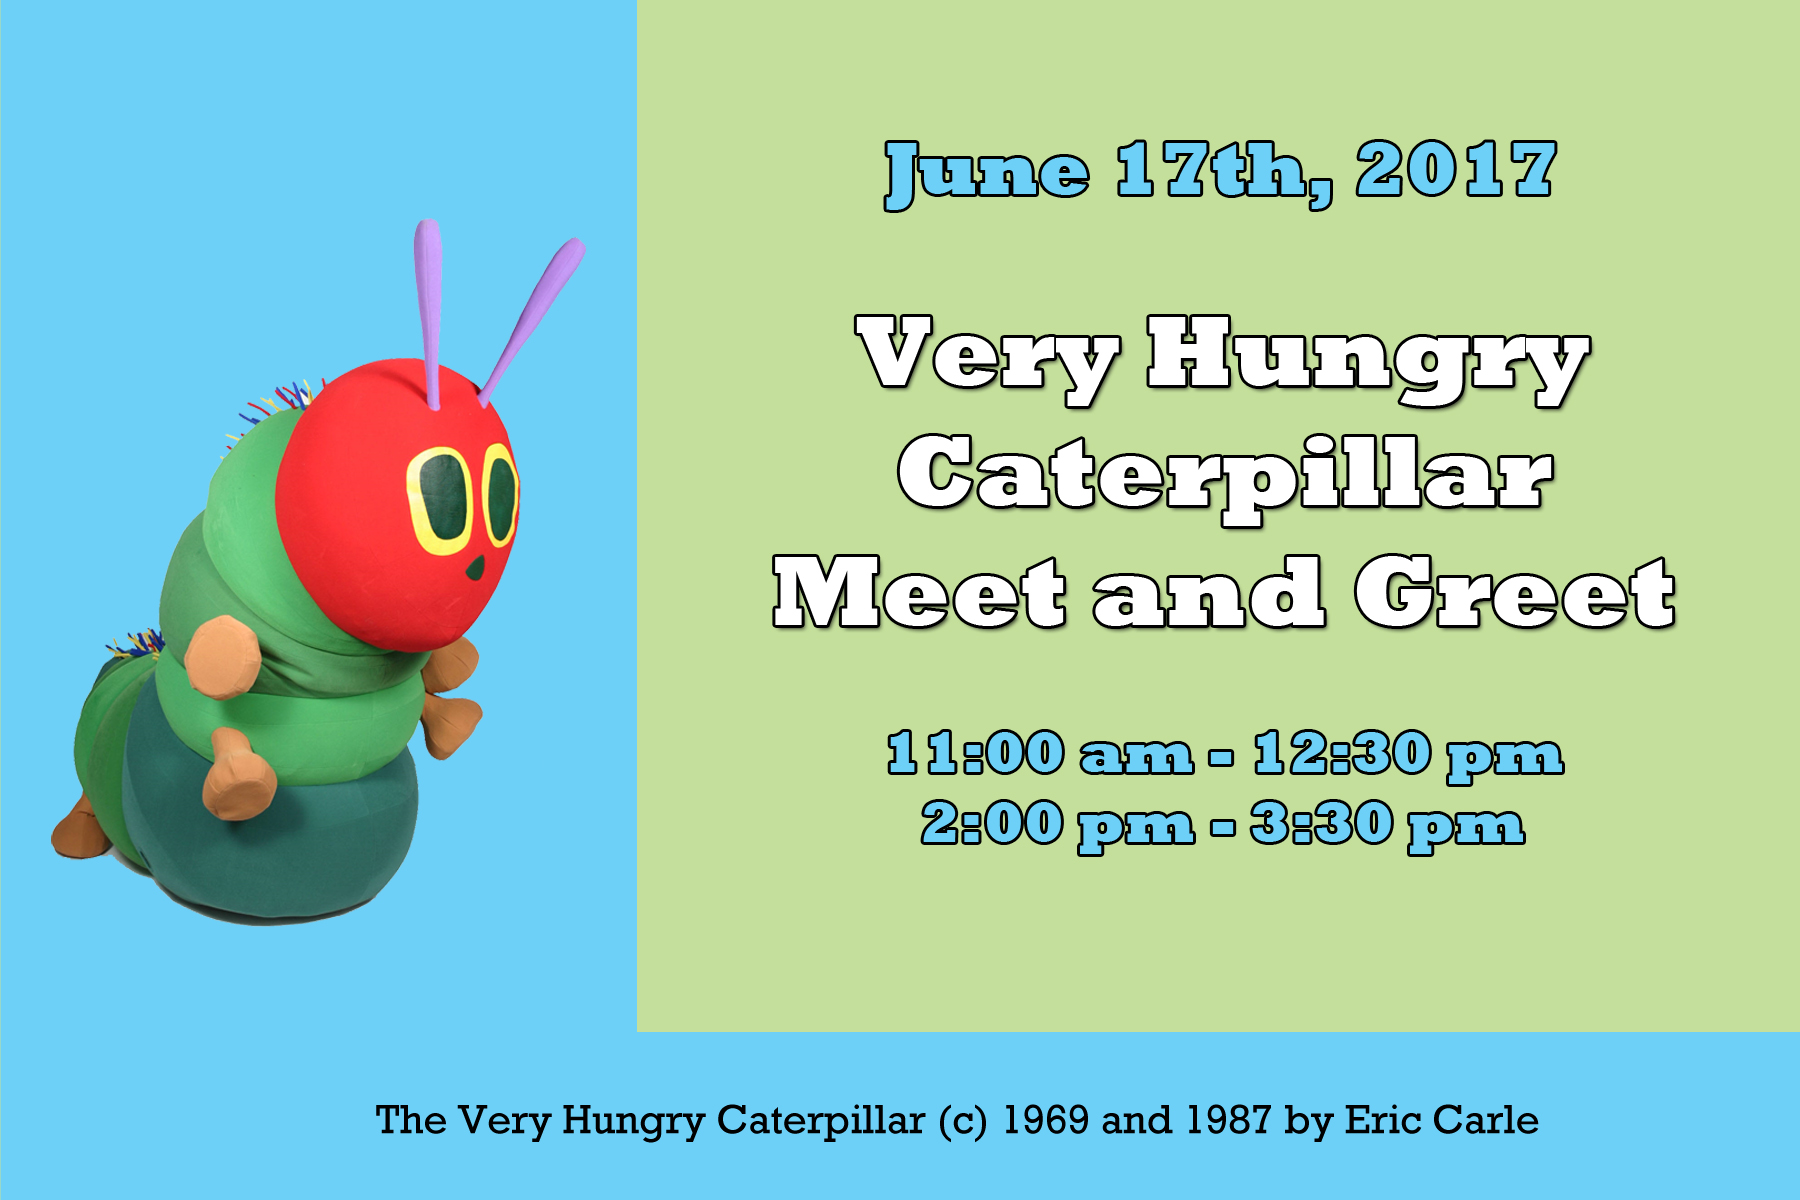 2017 05 the very hungry caterpillar lesson plans - Very Hungry Caterpillar Meet And Greet Kansas Children S Discovery Center